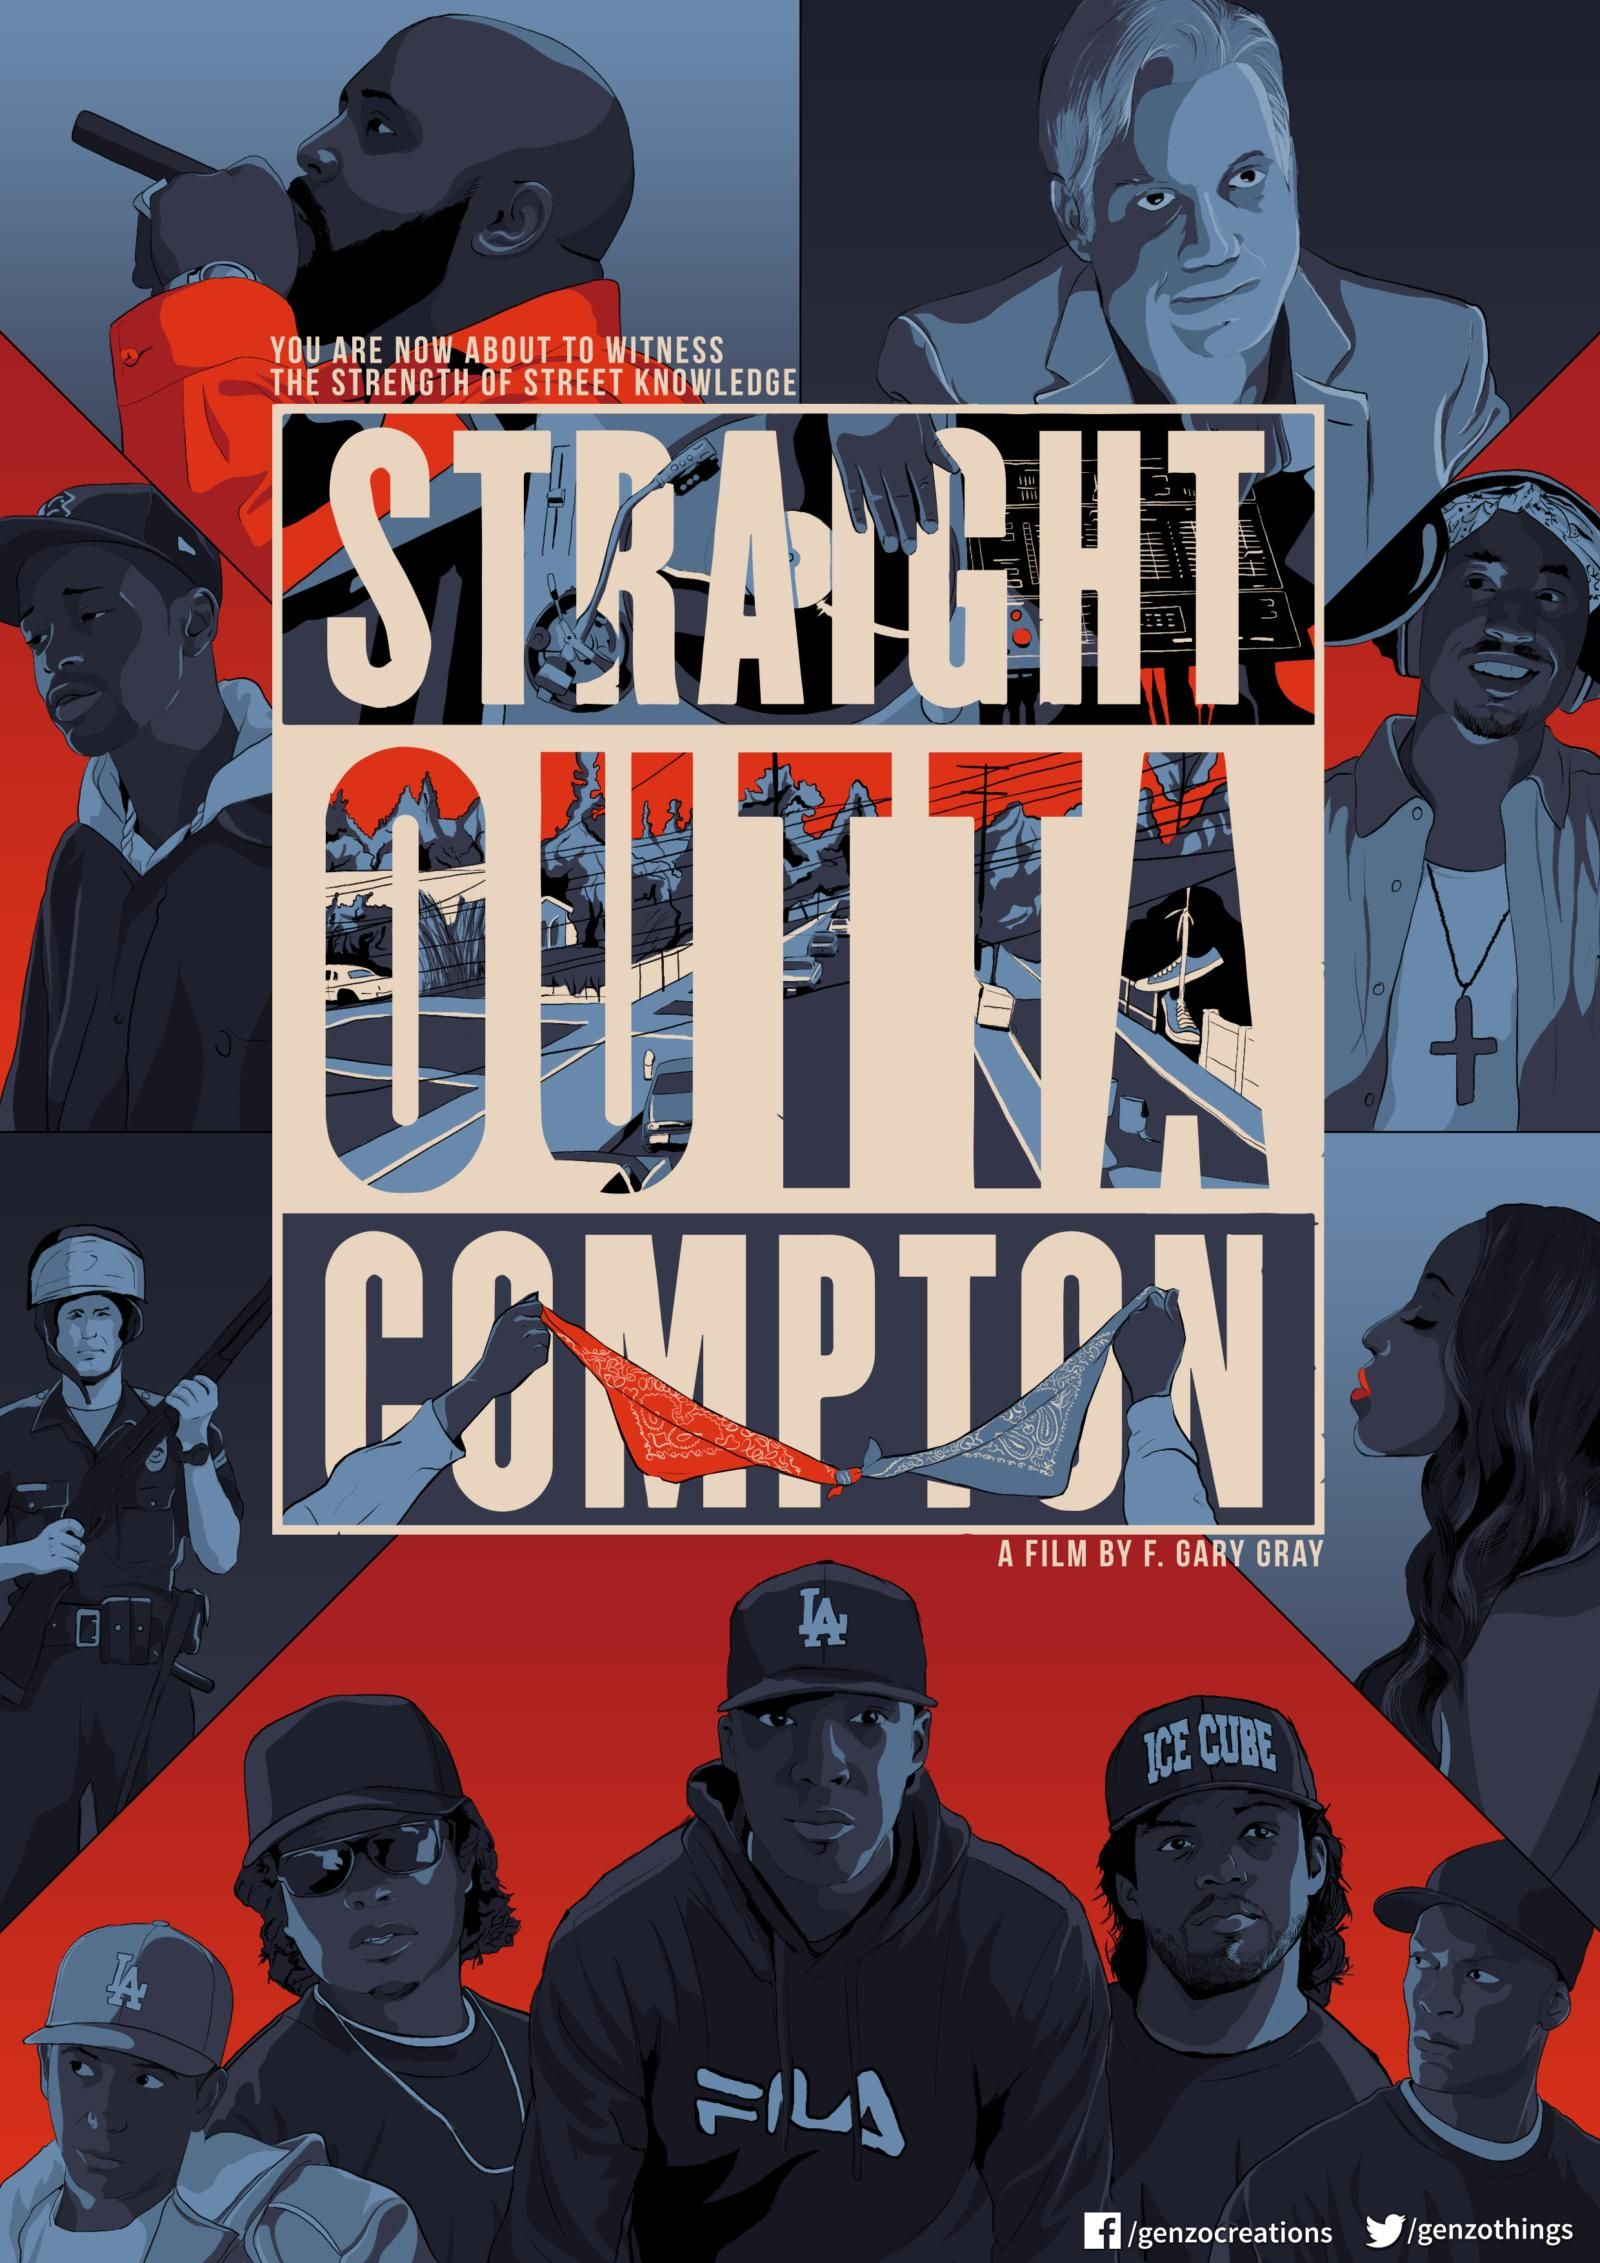 Straight Outta Compton 2015 Hd Wallpaper From Gallsource Com